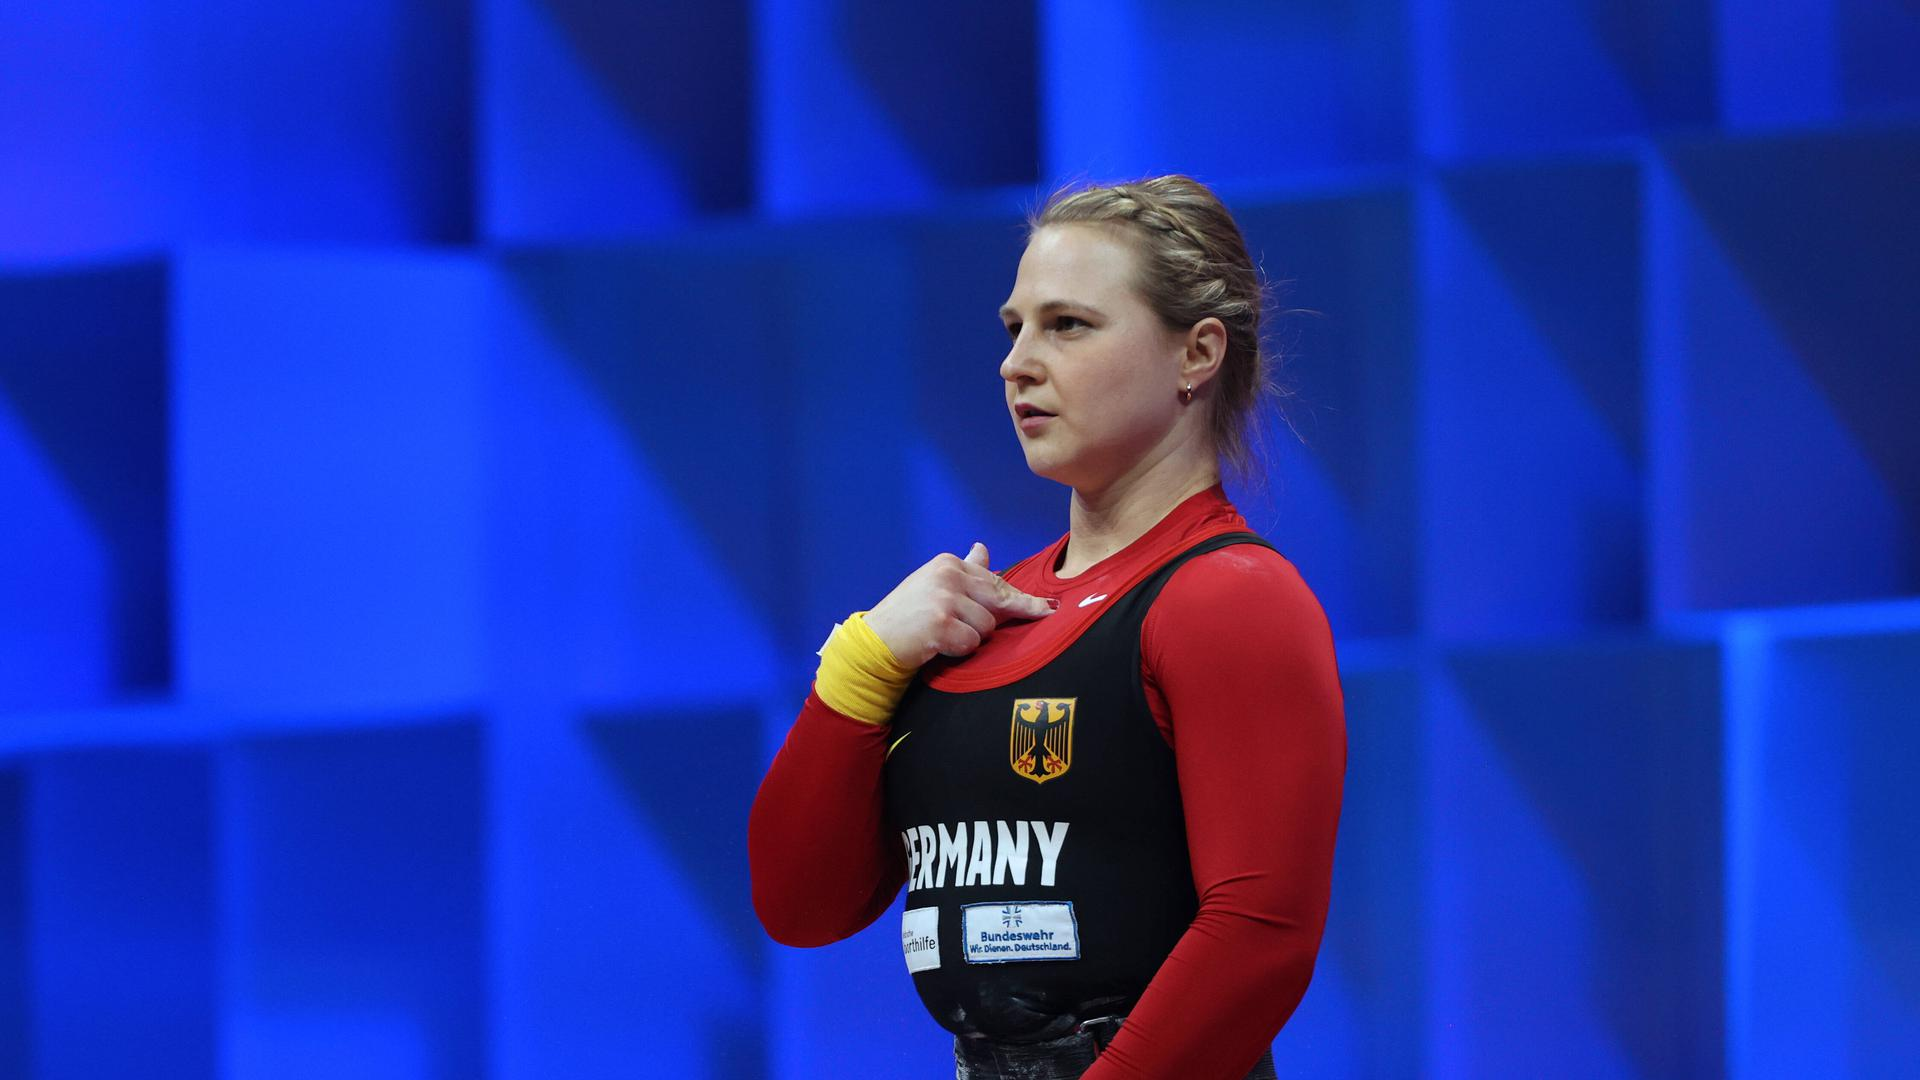 GOLD OLYMPIC QUALIFICATION EVENT European Weightlifting Championships. WOMEN SE 64. KUSTERER Sabine GER. PUBLICATIONxNOTxINxRUS